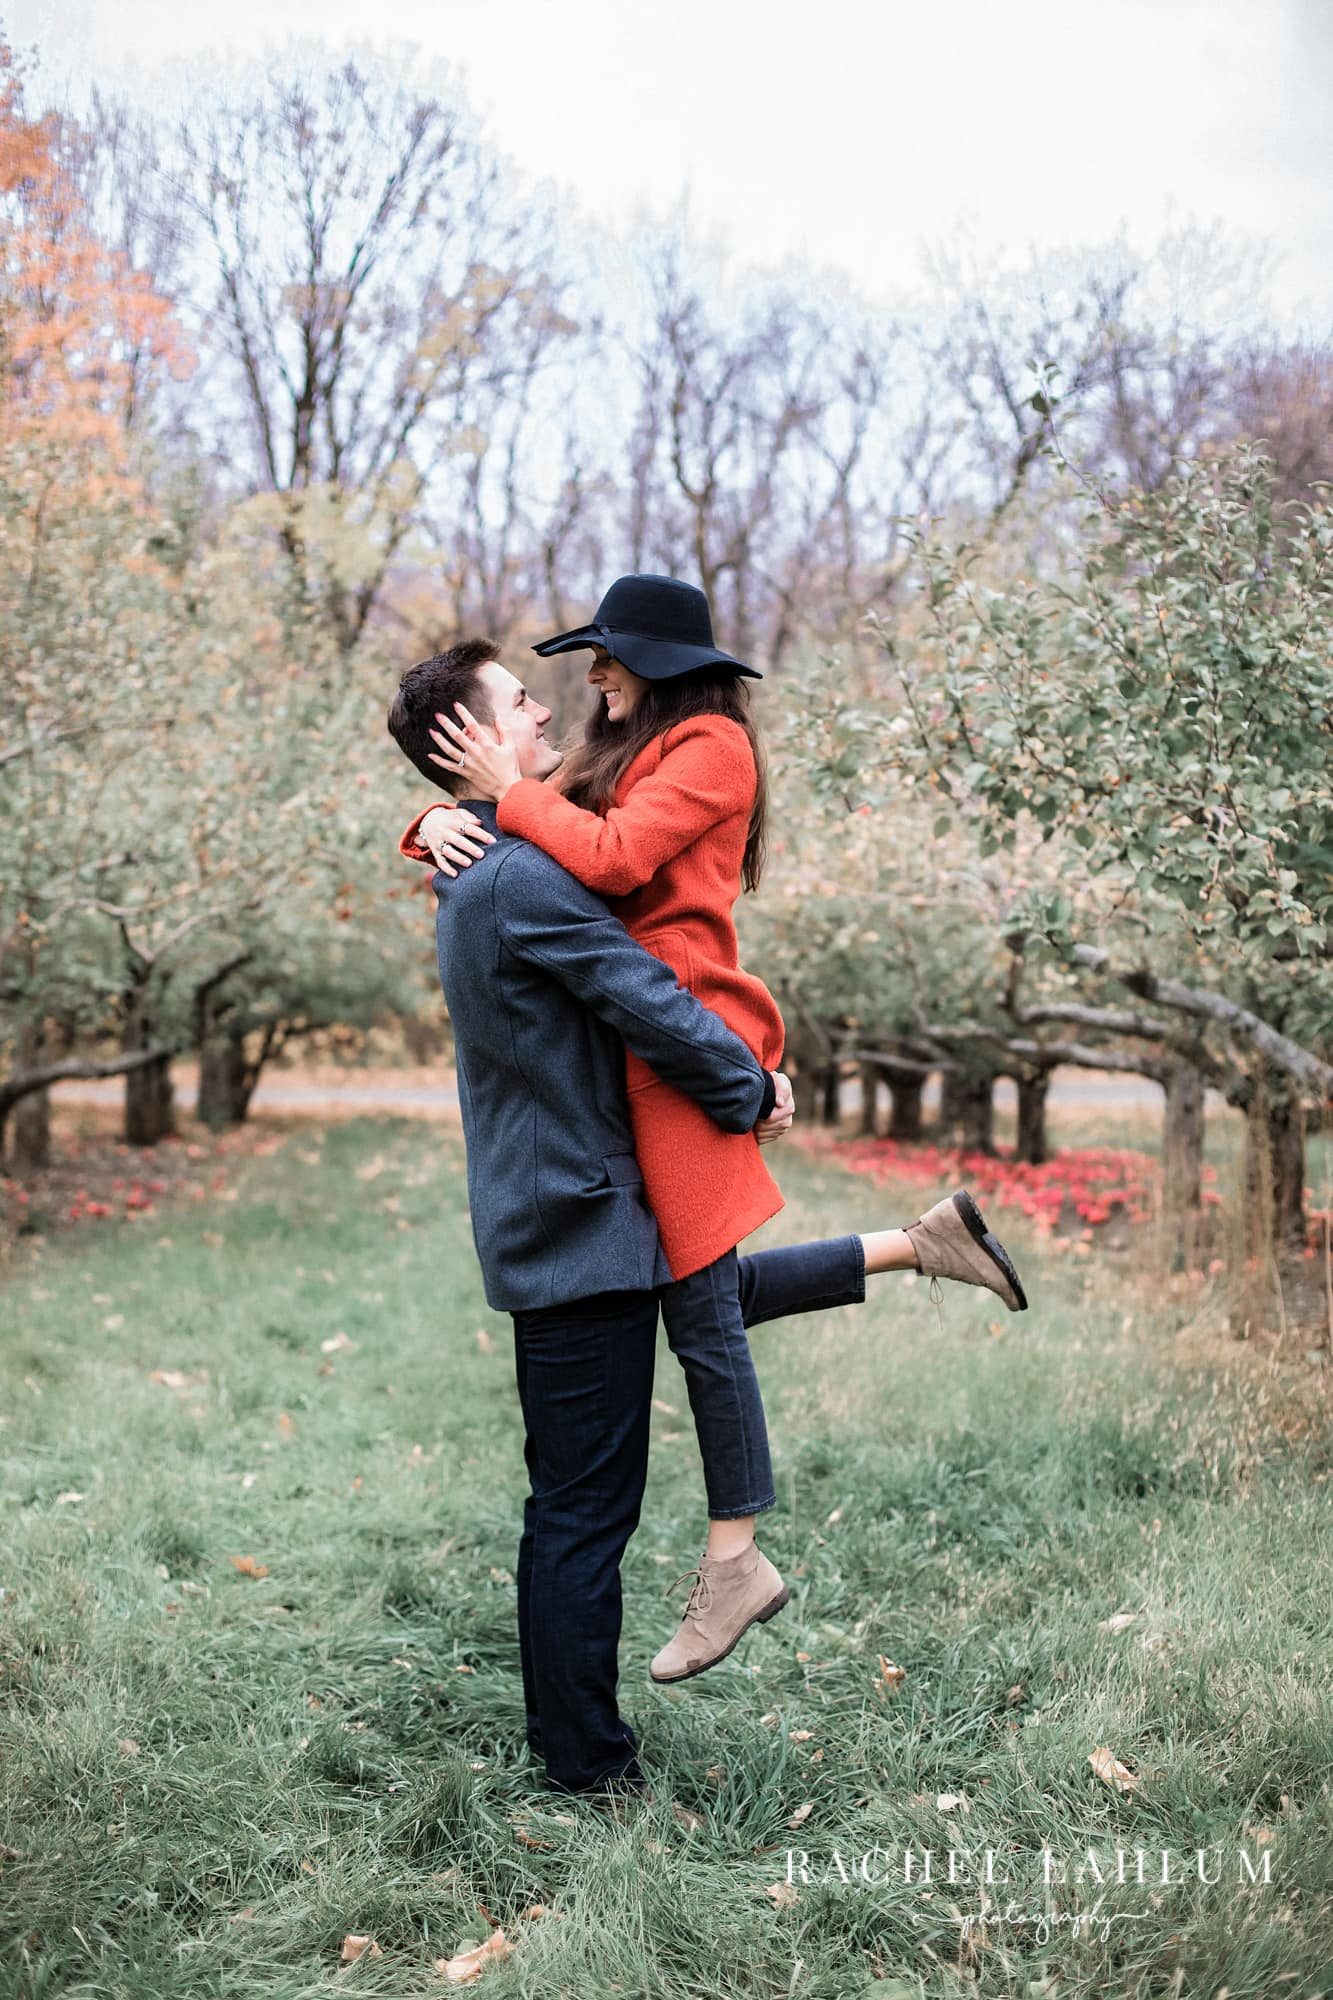 Man picks up fiancee in apple orchard during proposal photography session.